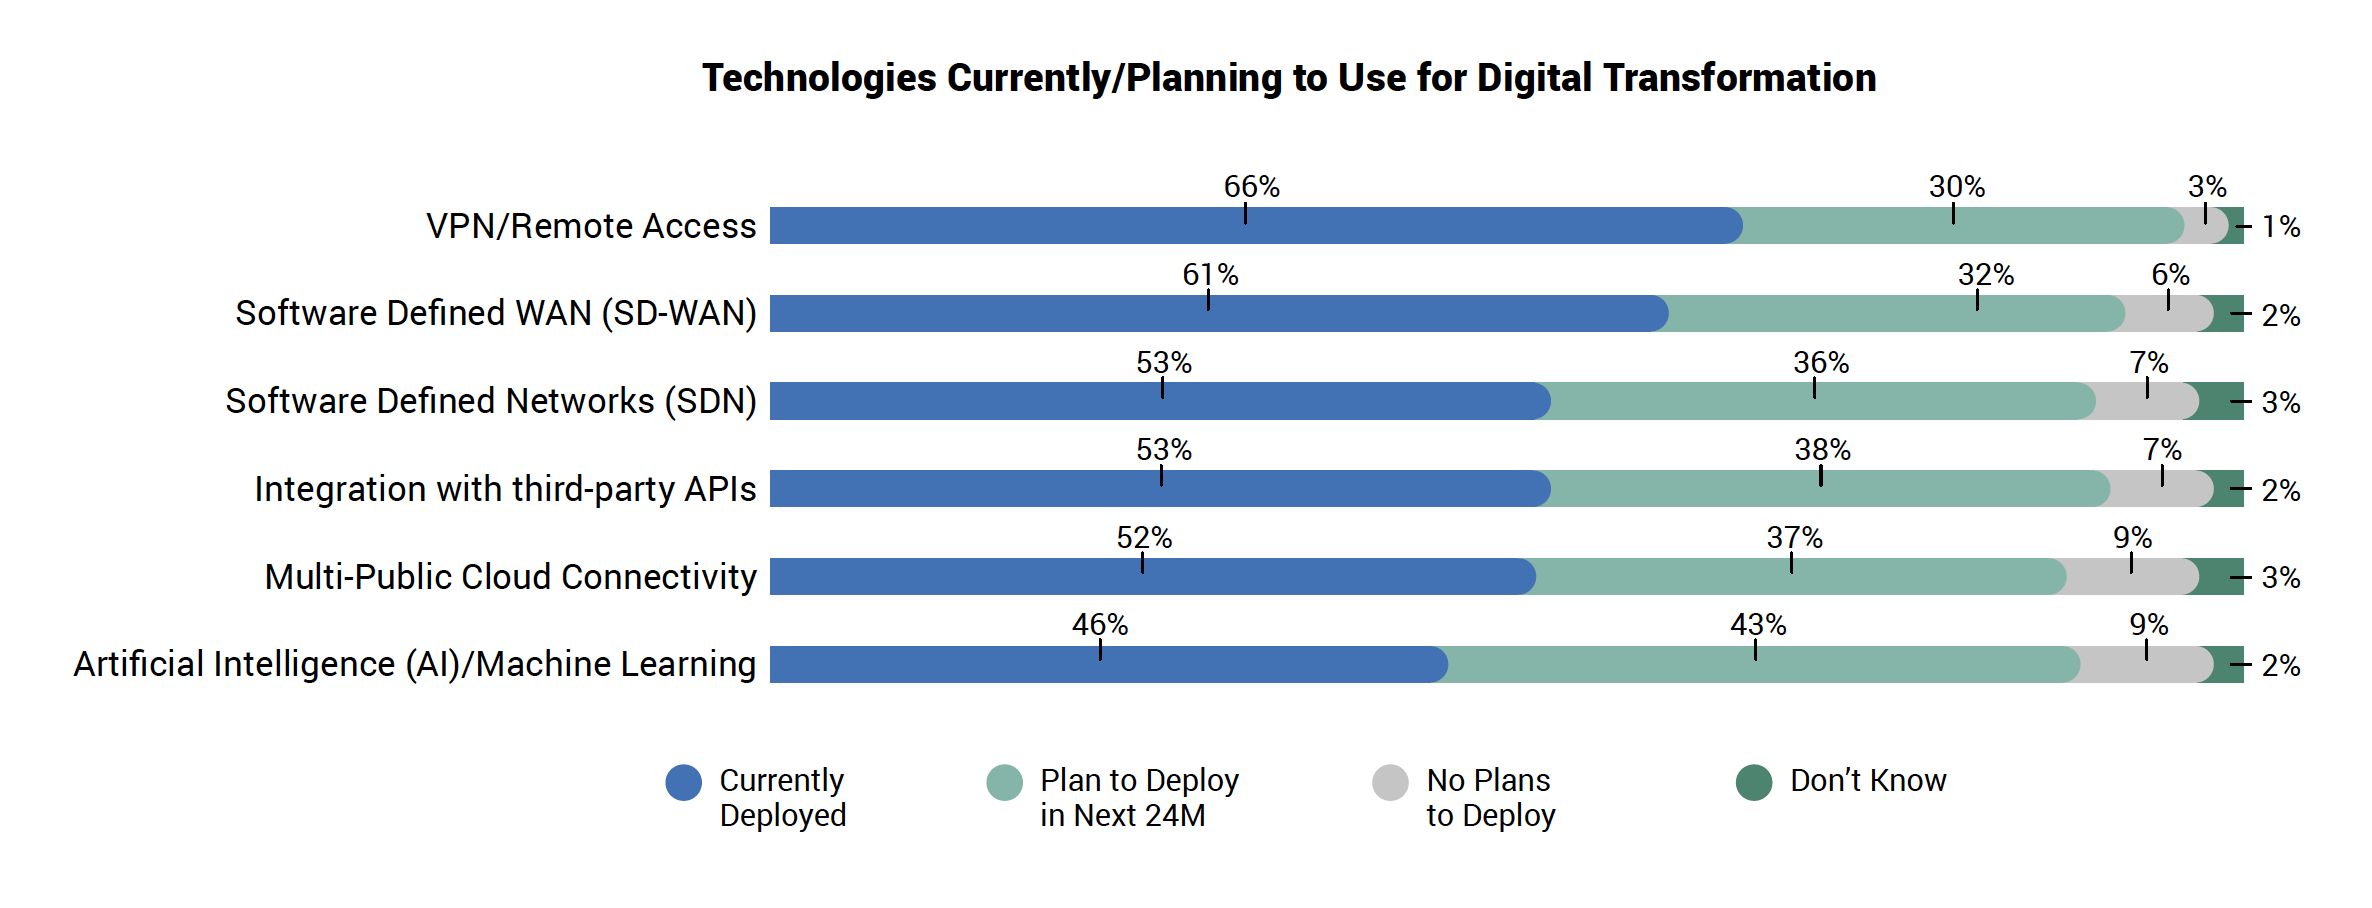 Technologies Currently/Planning to Use for Digital Transformation